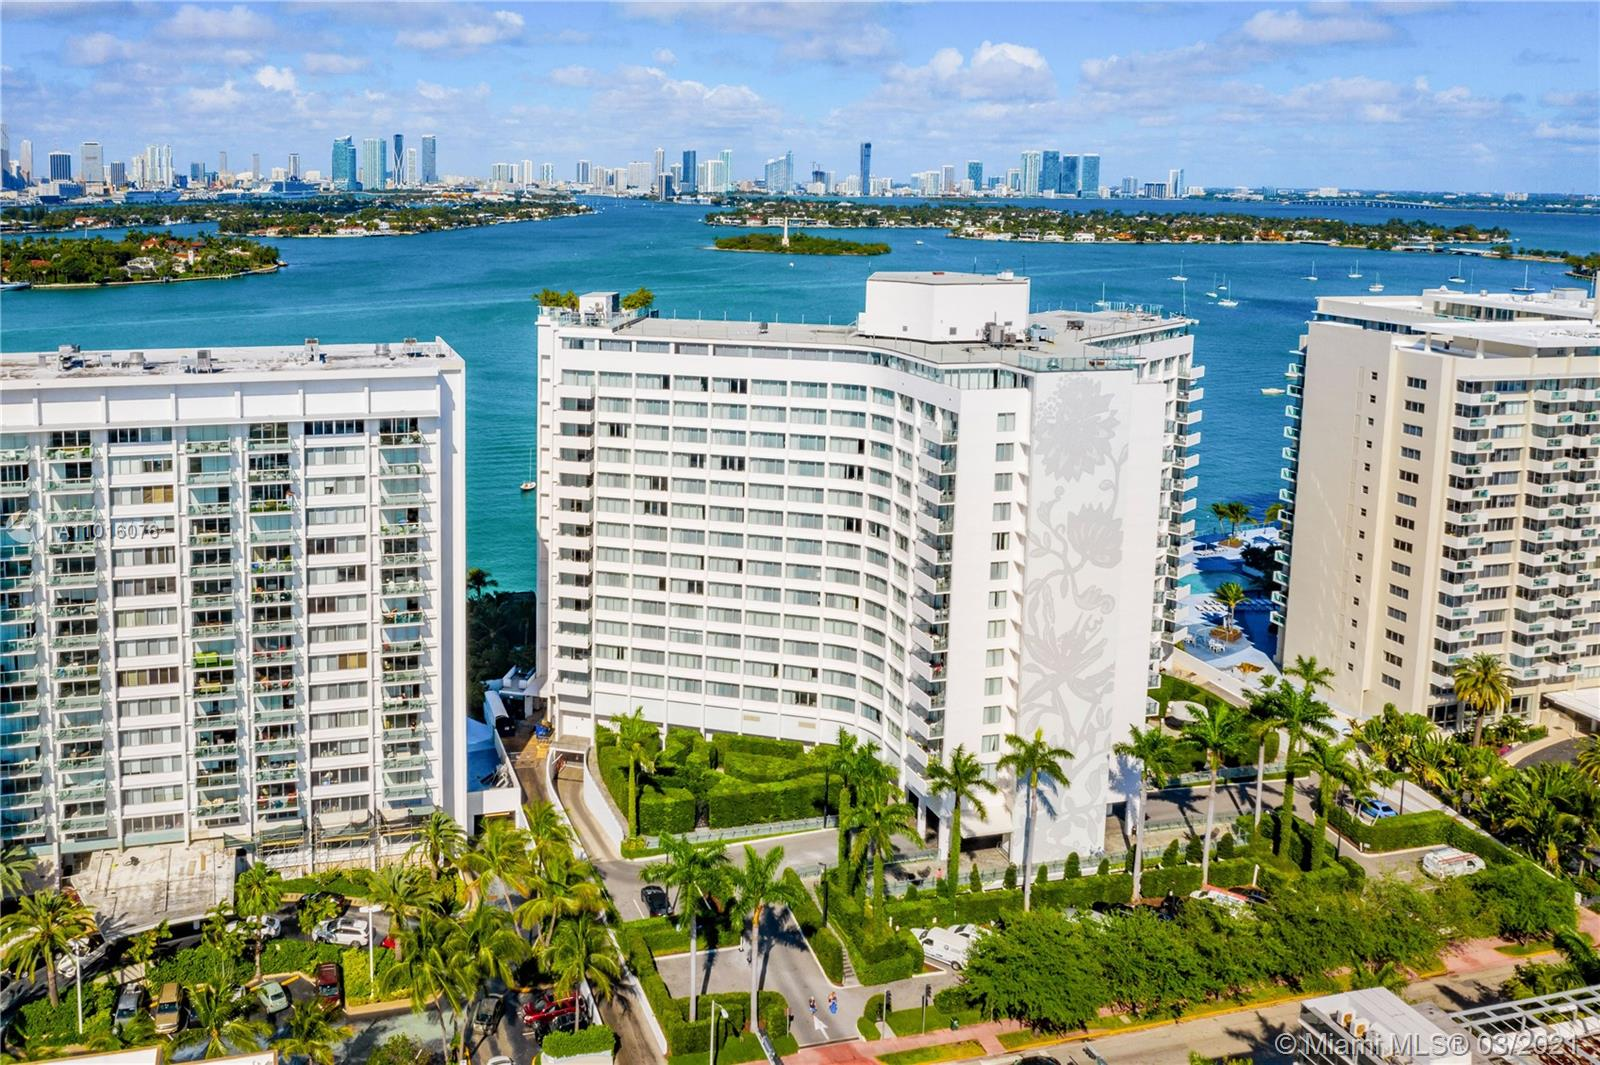 Beautiful Miami Skyline, Bay and Sunset views from this low floor location at the re-known Mondrian Hotel. Fully furnished and equipped, currently in the hotel pool but buyer can opt out of agreement after purchase. Enjoy the pleasure of staying in Miami Beach, its pool parties & more. One of the hottest spots in South Beach, also offers rental income (daily, weekly, monthly, yearly)to cover your operating expenses. If left into Hotel Rental management, owner can use the condo at least 69 days per year. Best views side of the building on a low floor with open water views, pool area and more. Monthly maintenance fee amount, application fees and dock availability must be checked/verified by buyer/agents with condo association.